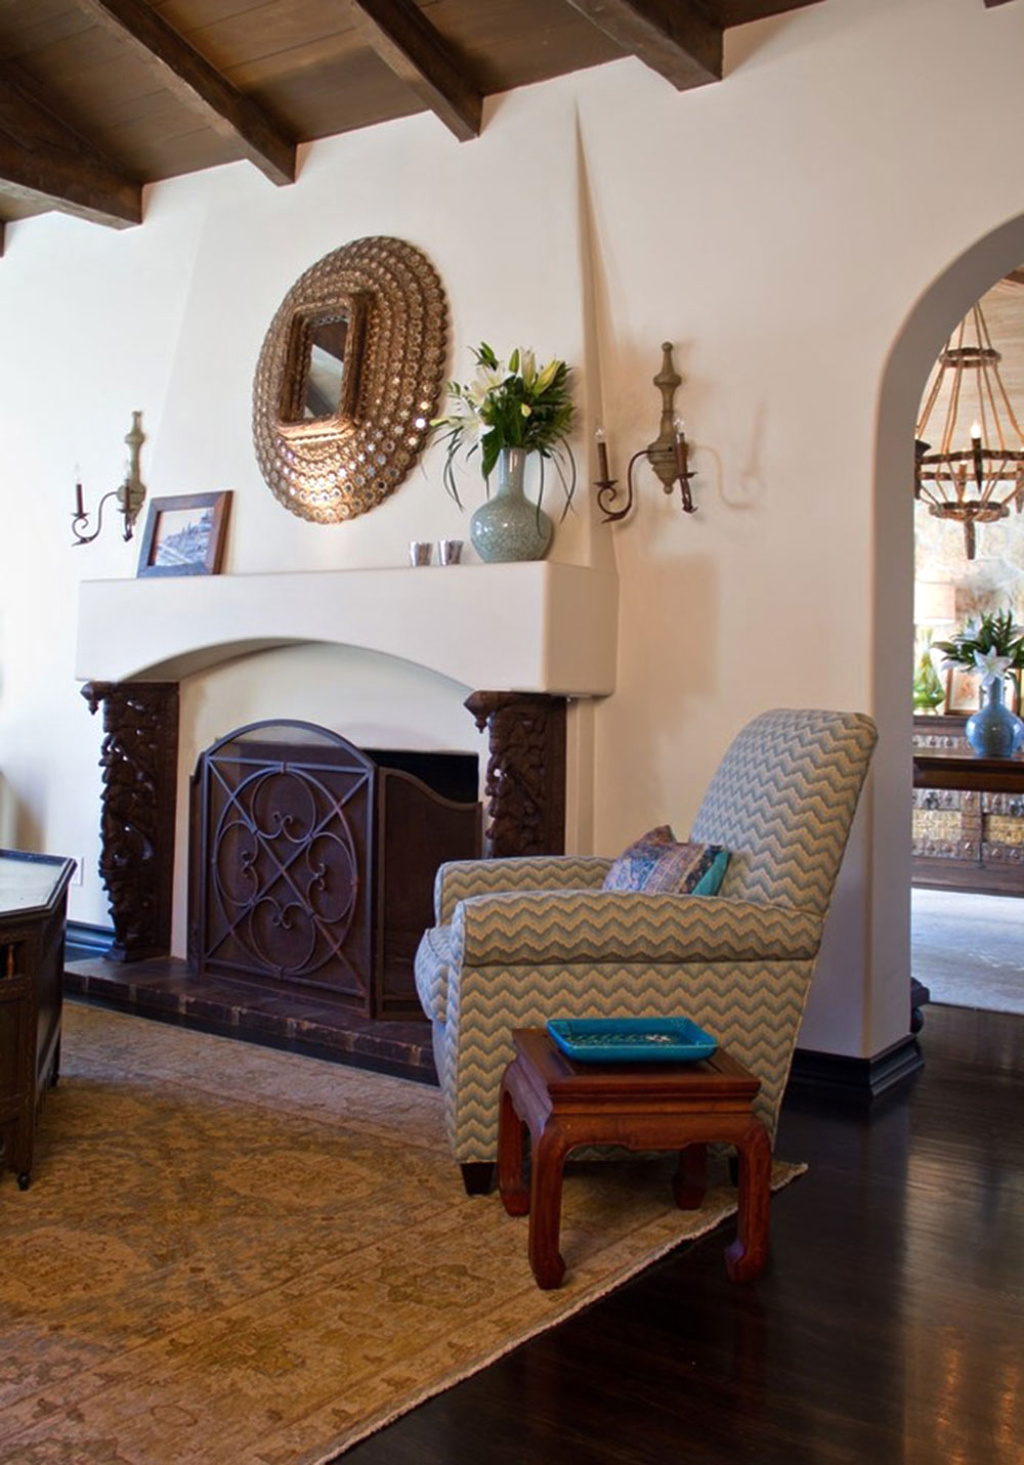 Rustic Living Room with Southwestern Design